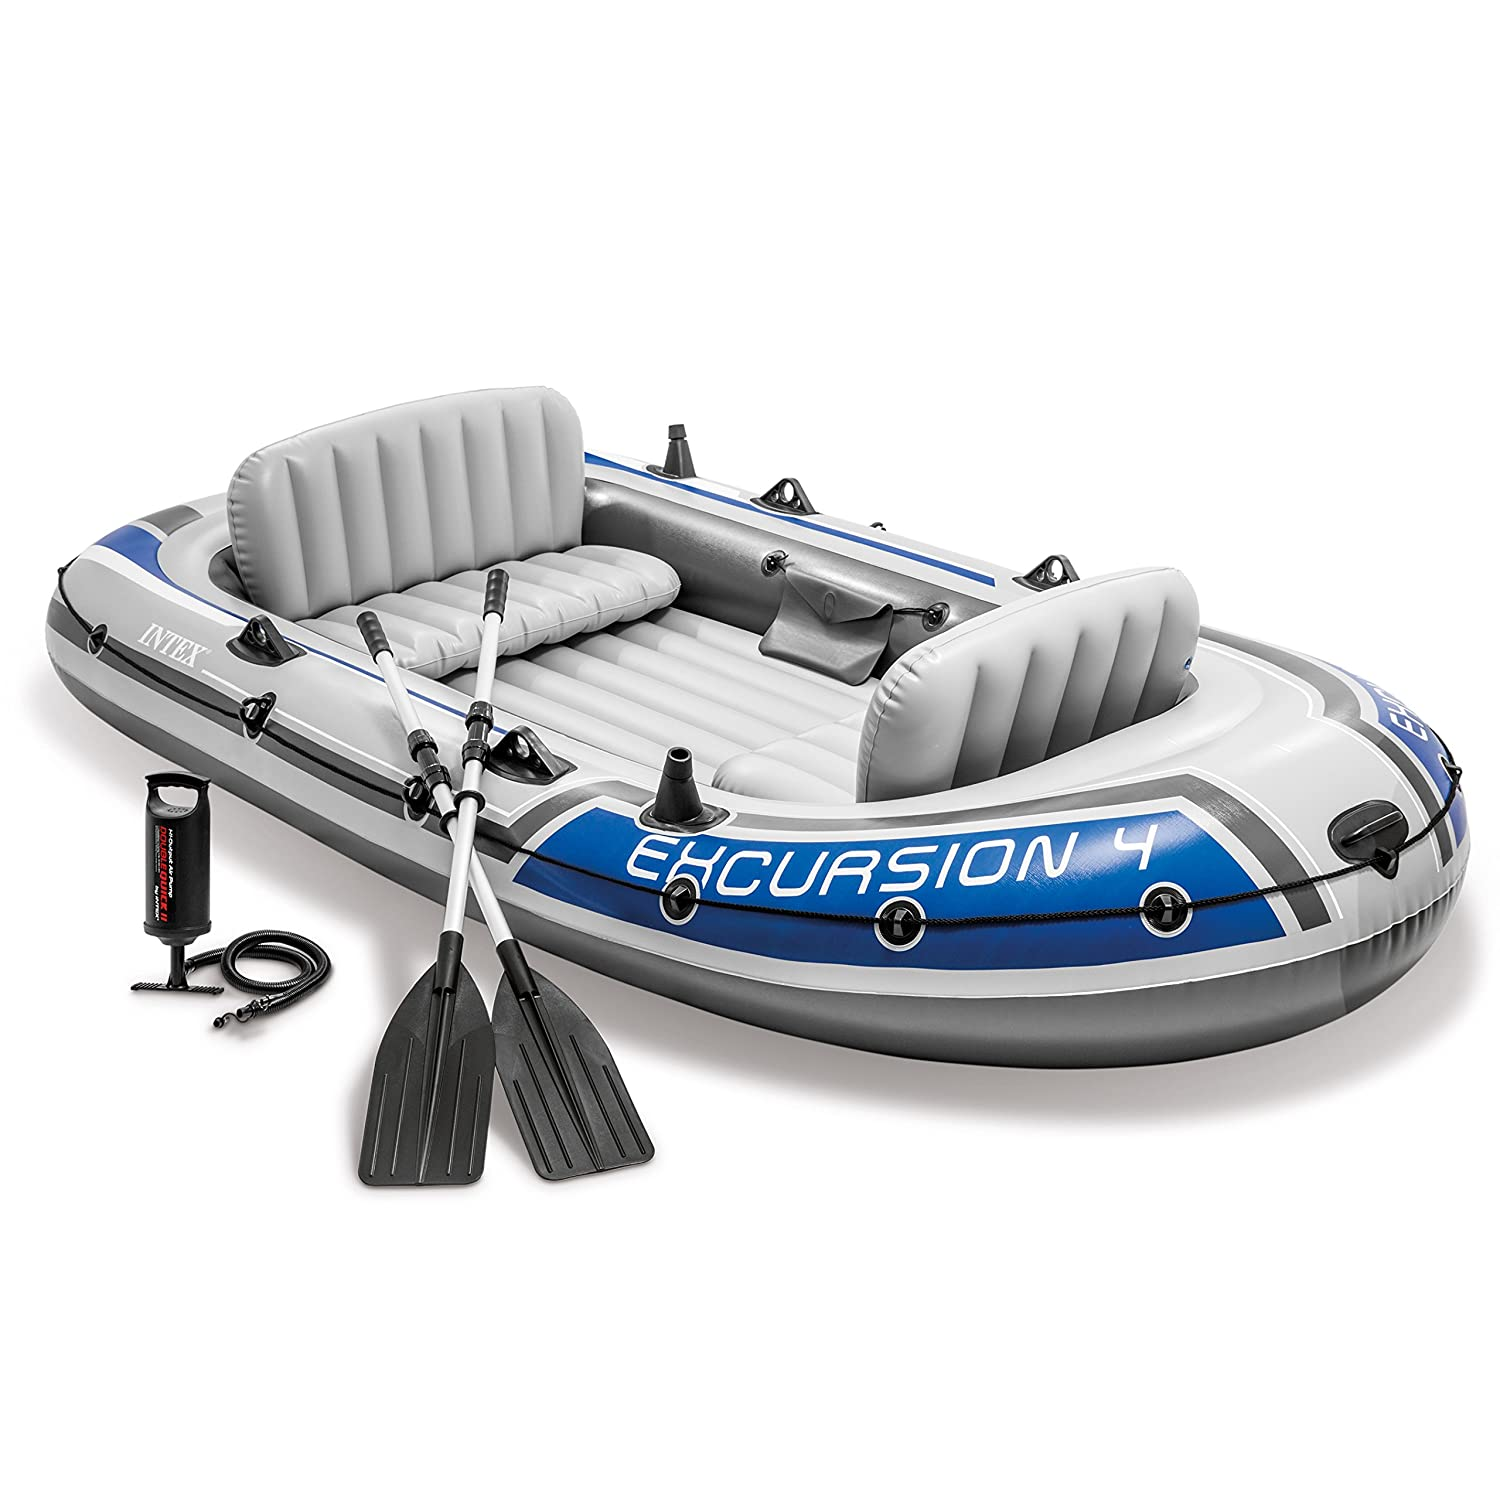 The 4-Person Intex Excursion Inflatable Fishing Boat